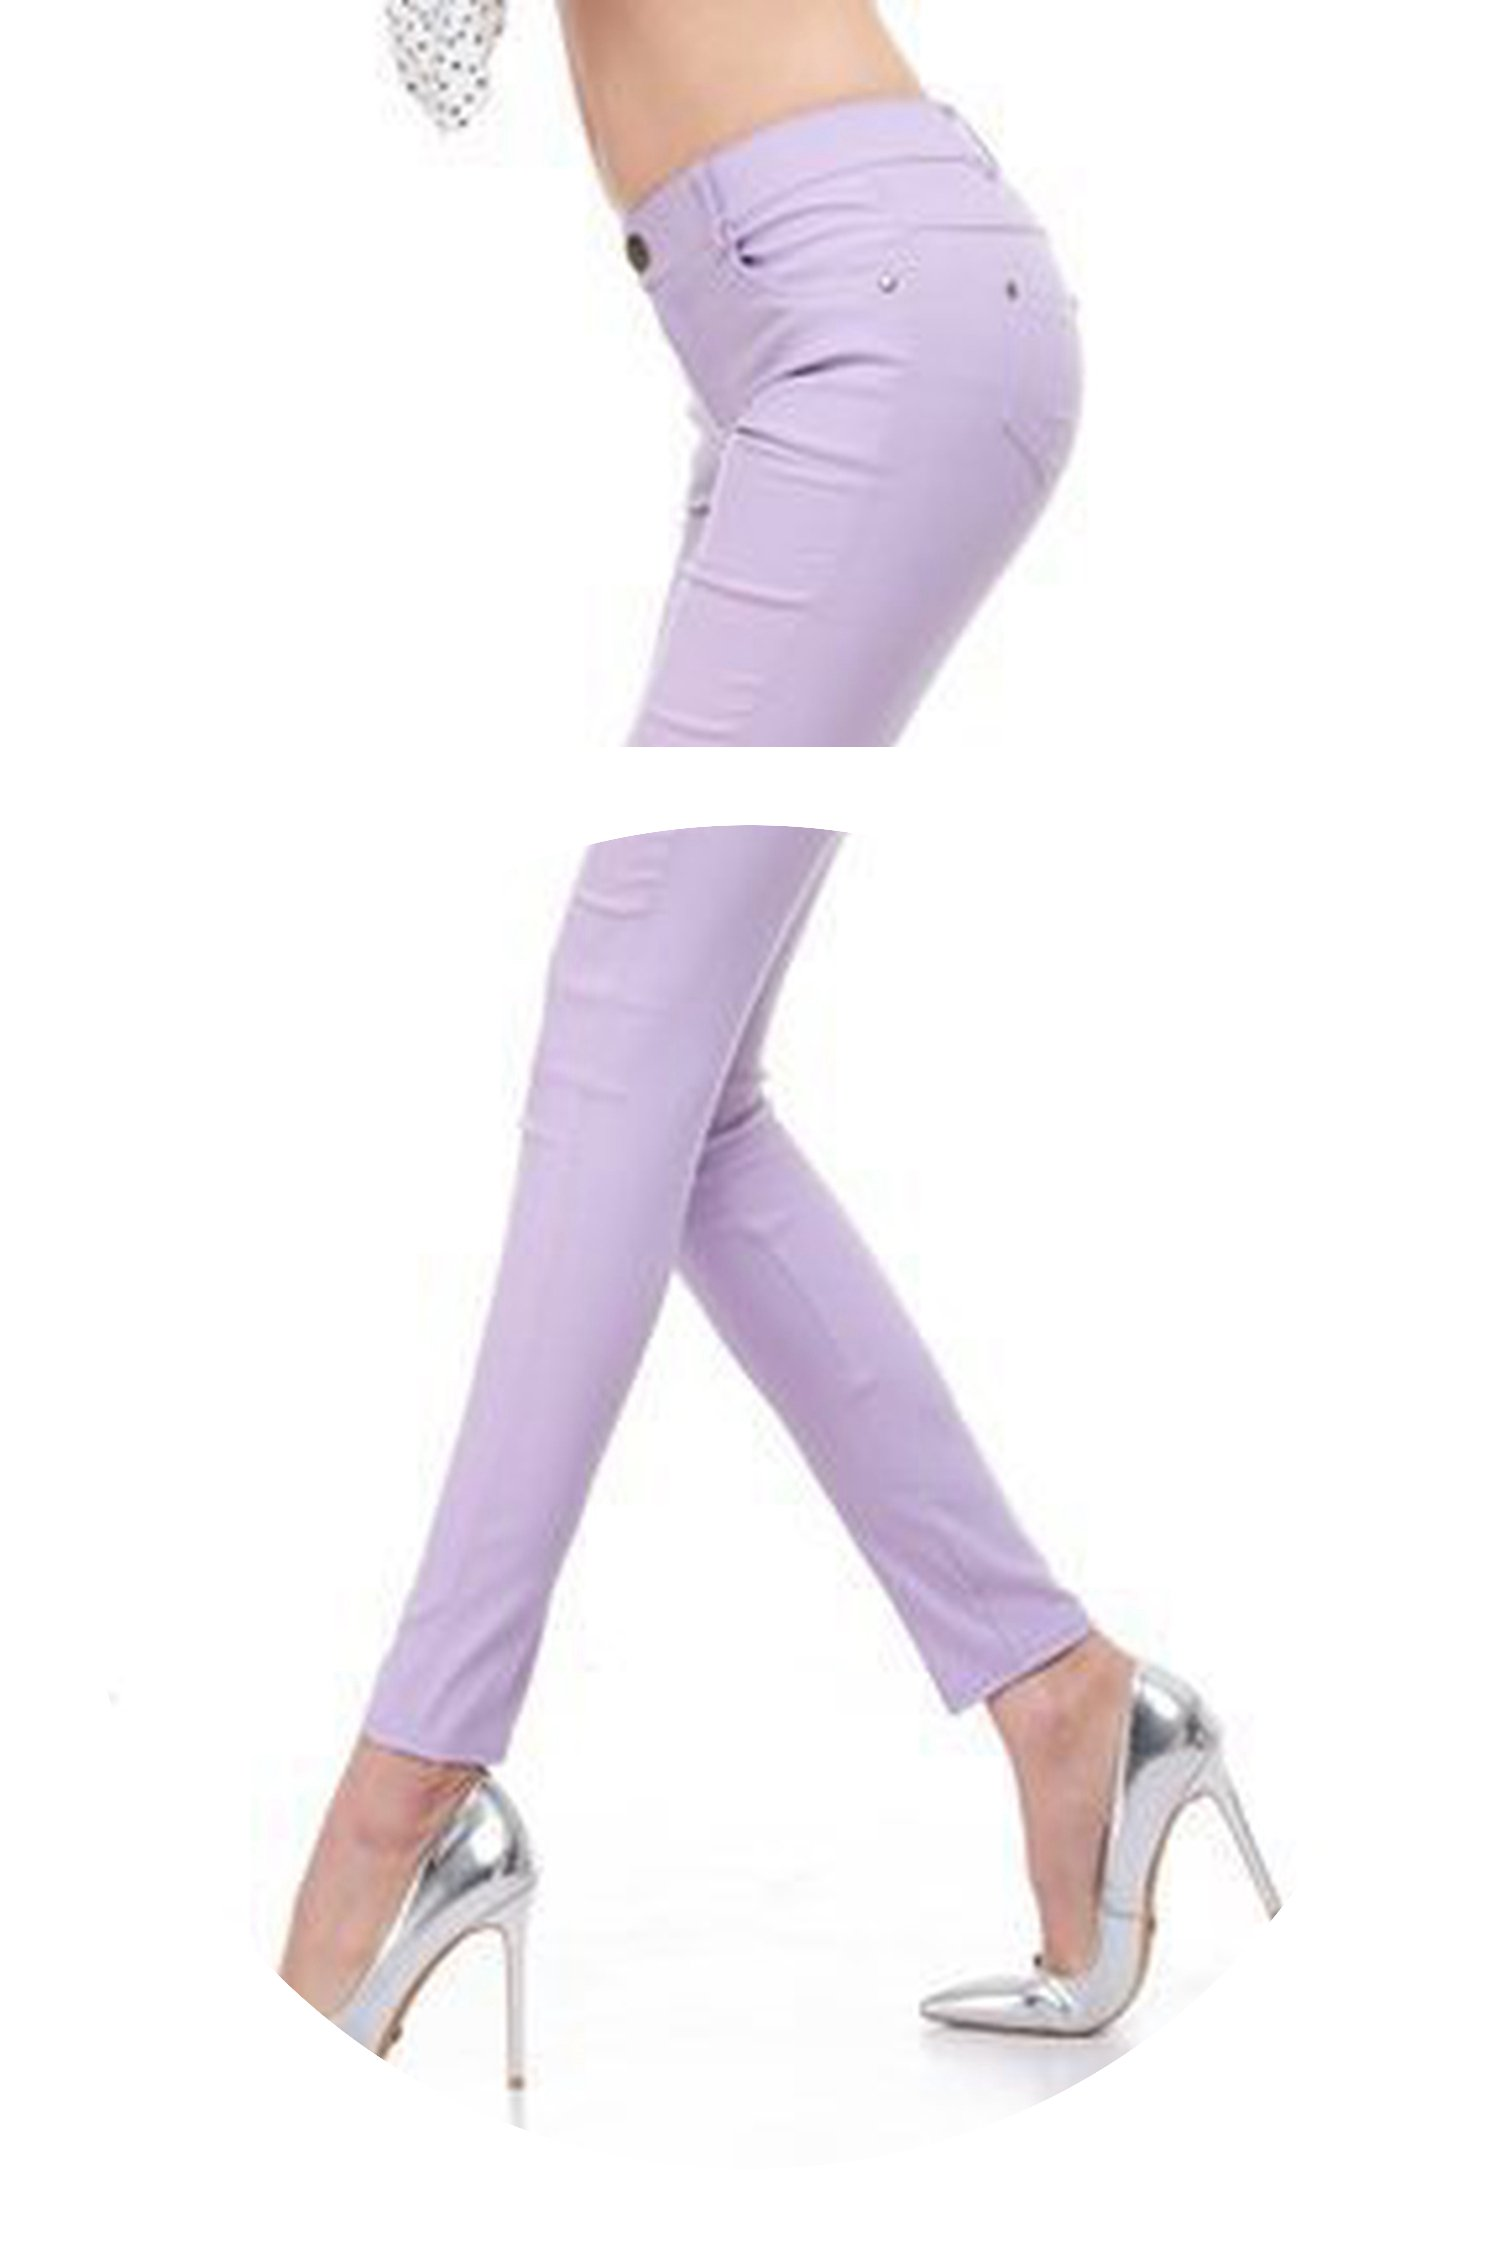 2018 Spring and Summer Women's Slim Pencil Pants Candy Colors Slacks Girl's Stretch Trousers Elastic,Purple,M